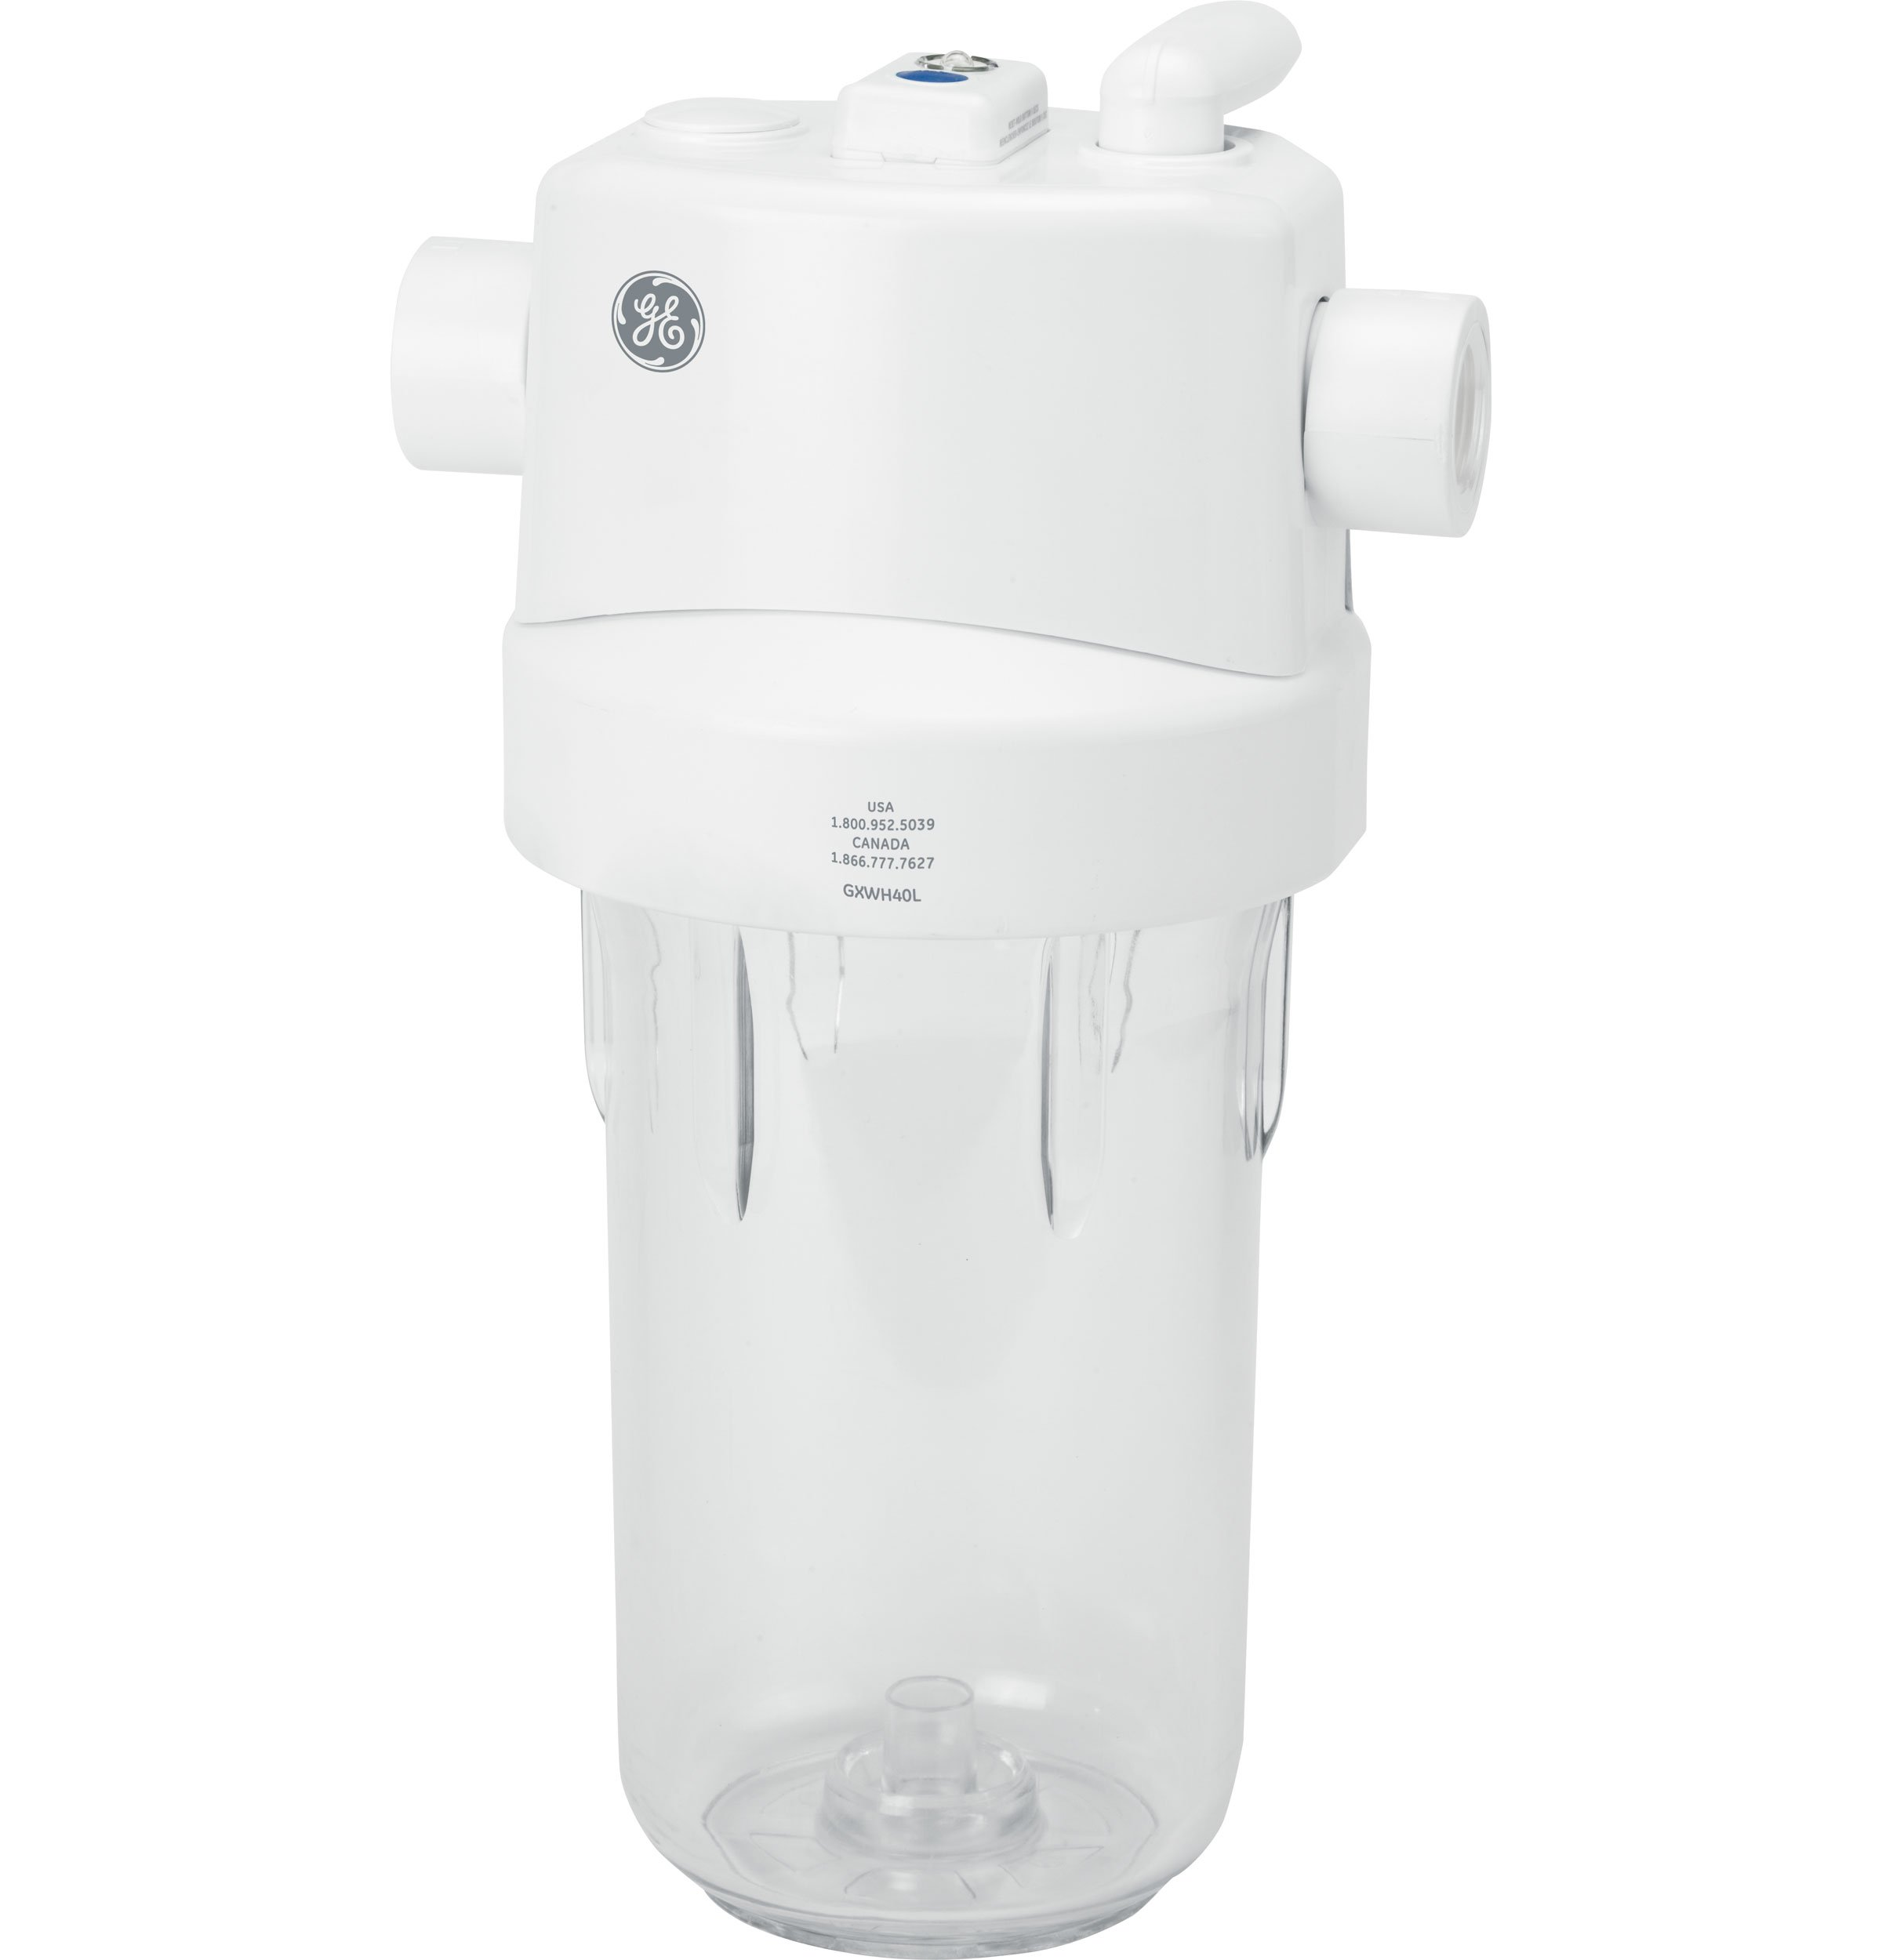 GE GXWH40L High Flow Whole Home Filtration System by General Electric